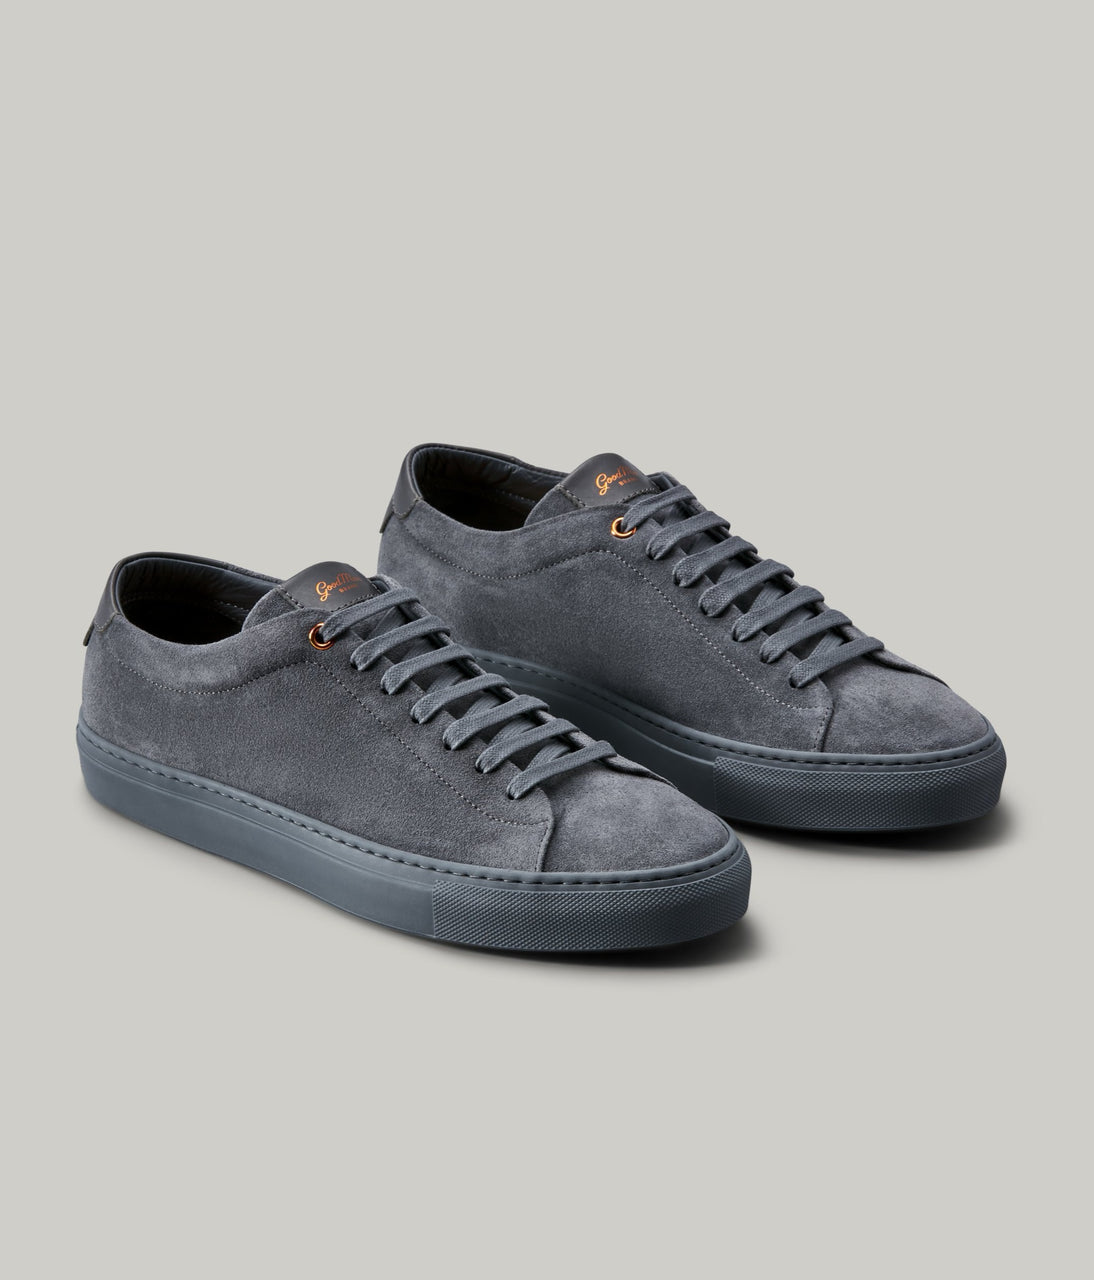 Edge Mono Lo-Top Sneaker in Suede - Charcoal - Good Man Brand - Edge Mono Lo-Top Sneaker in Suede - Charcoal